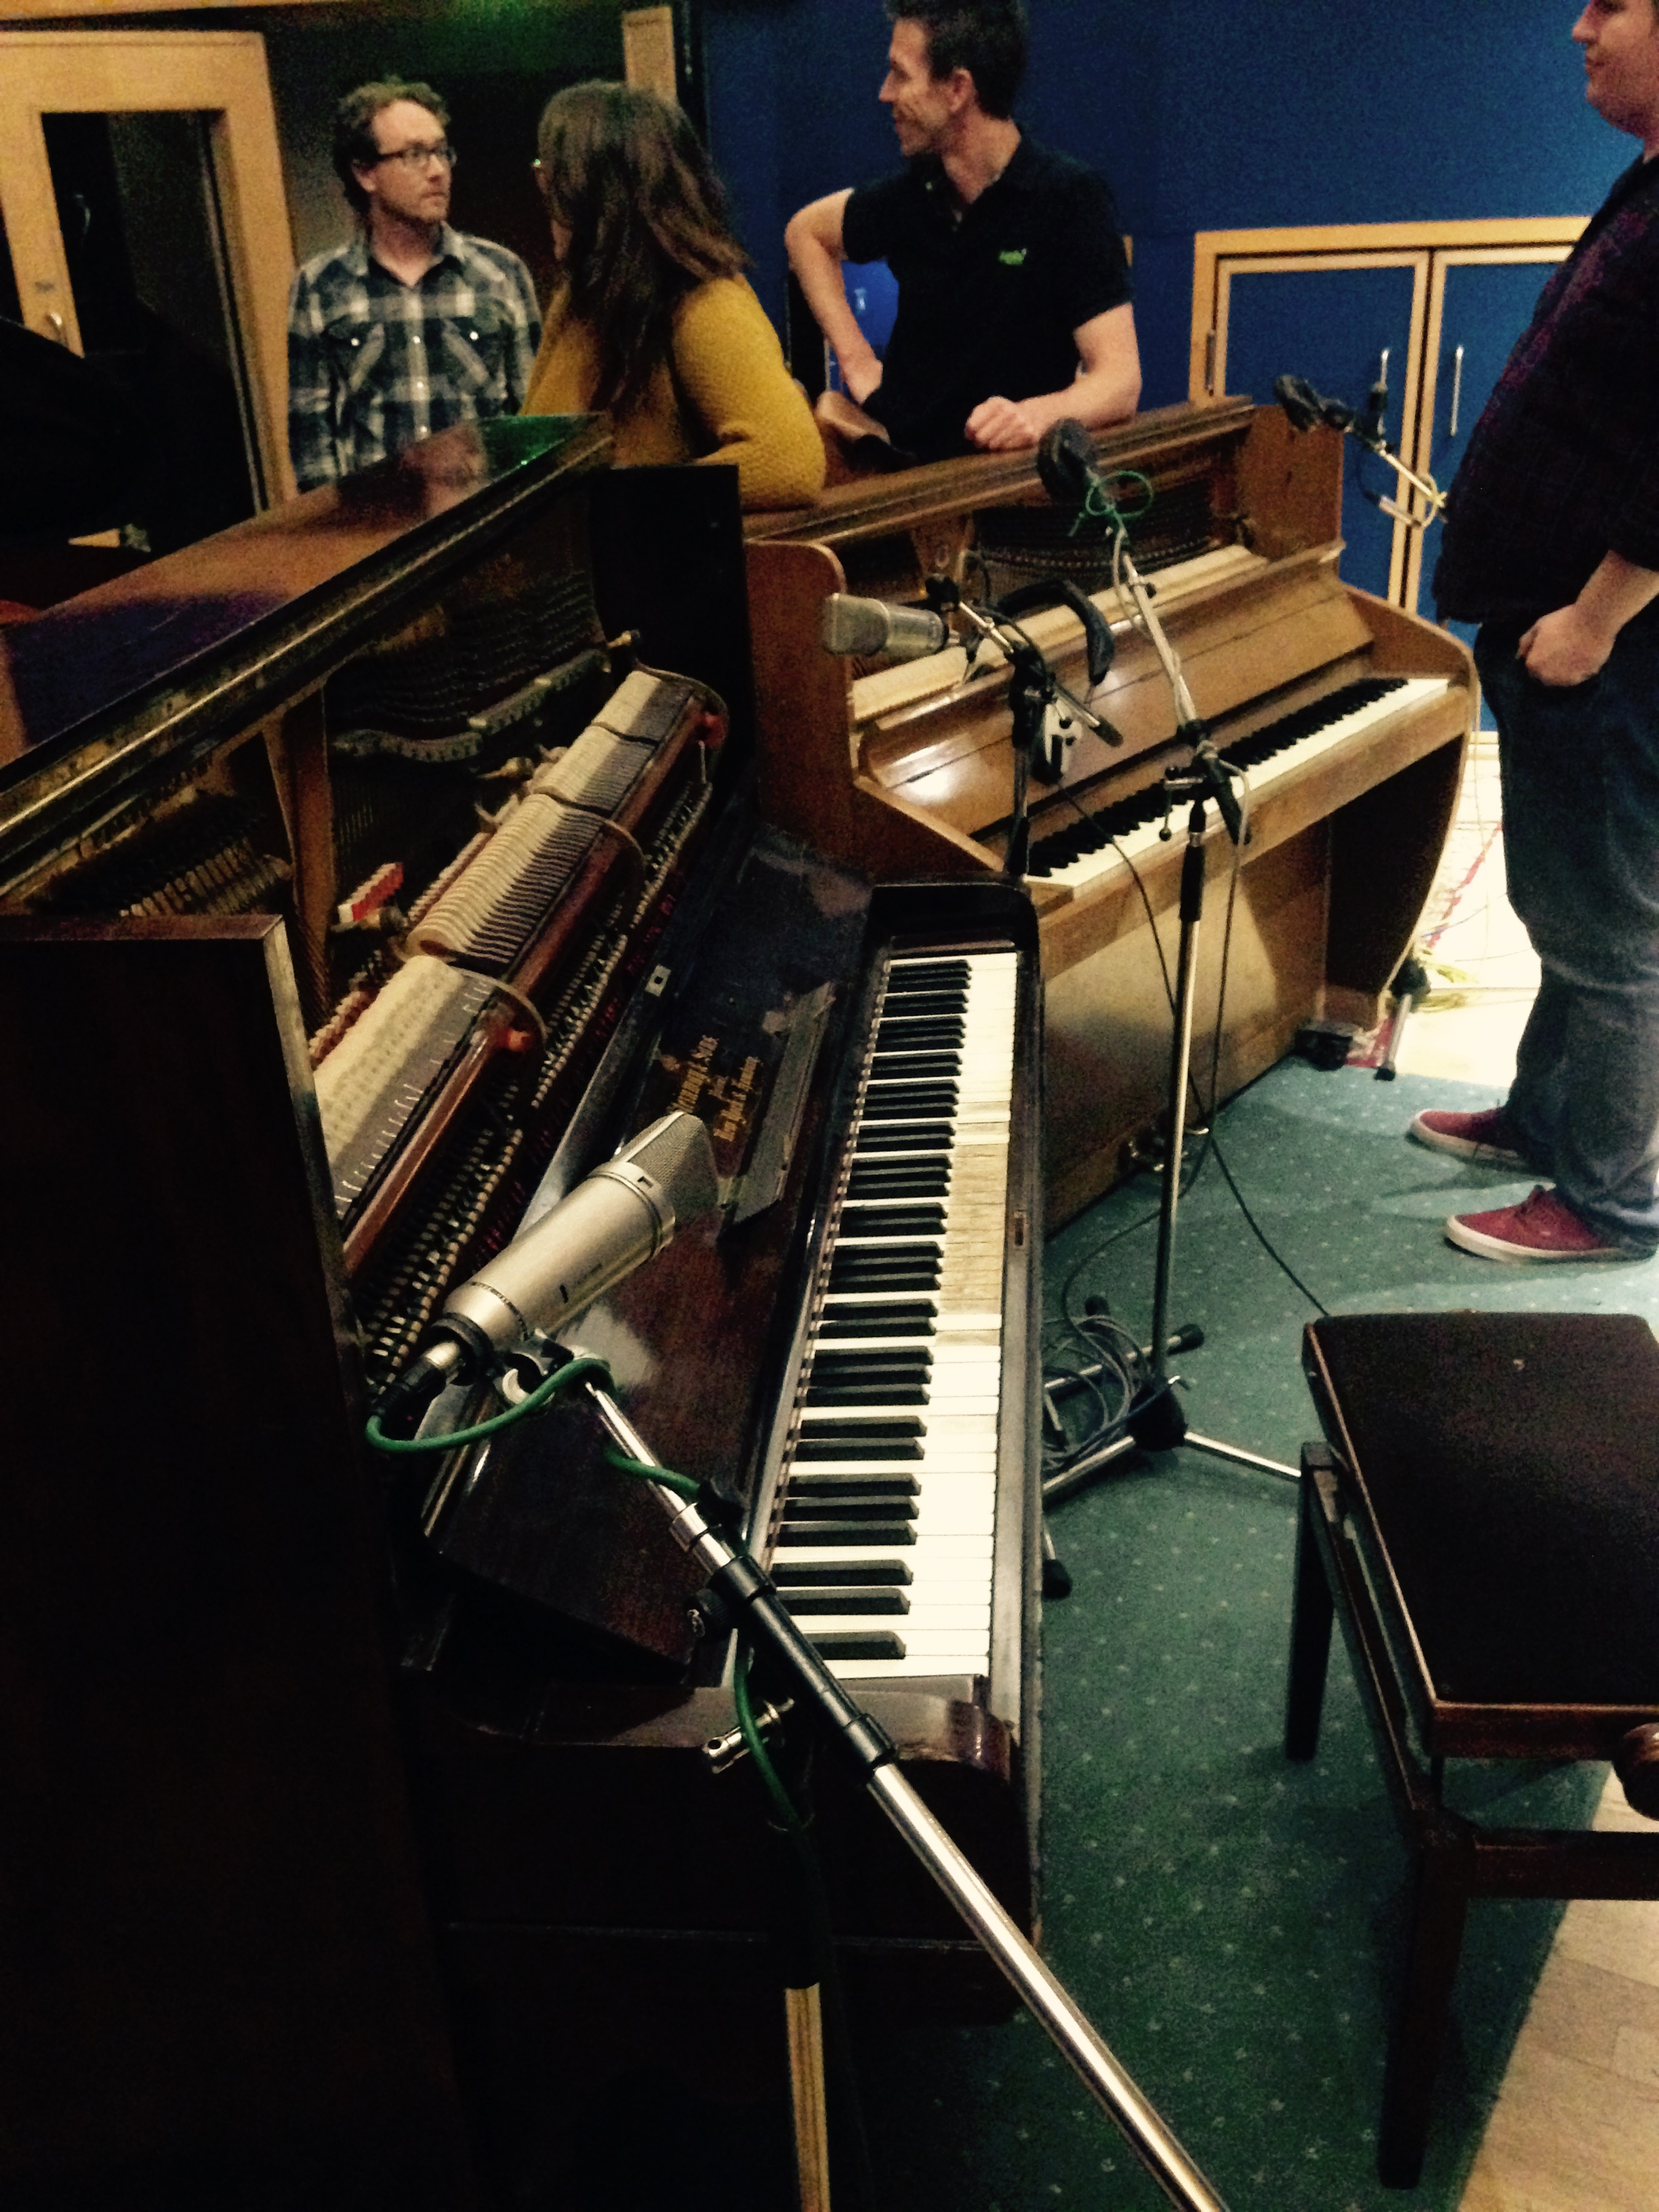 On the left is the Lady Madonna Piano, on the right is the Day In The Life piano. Had a go on both